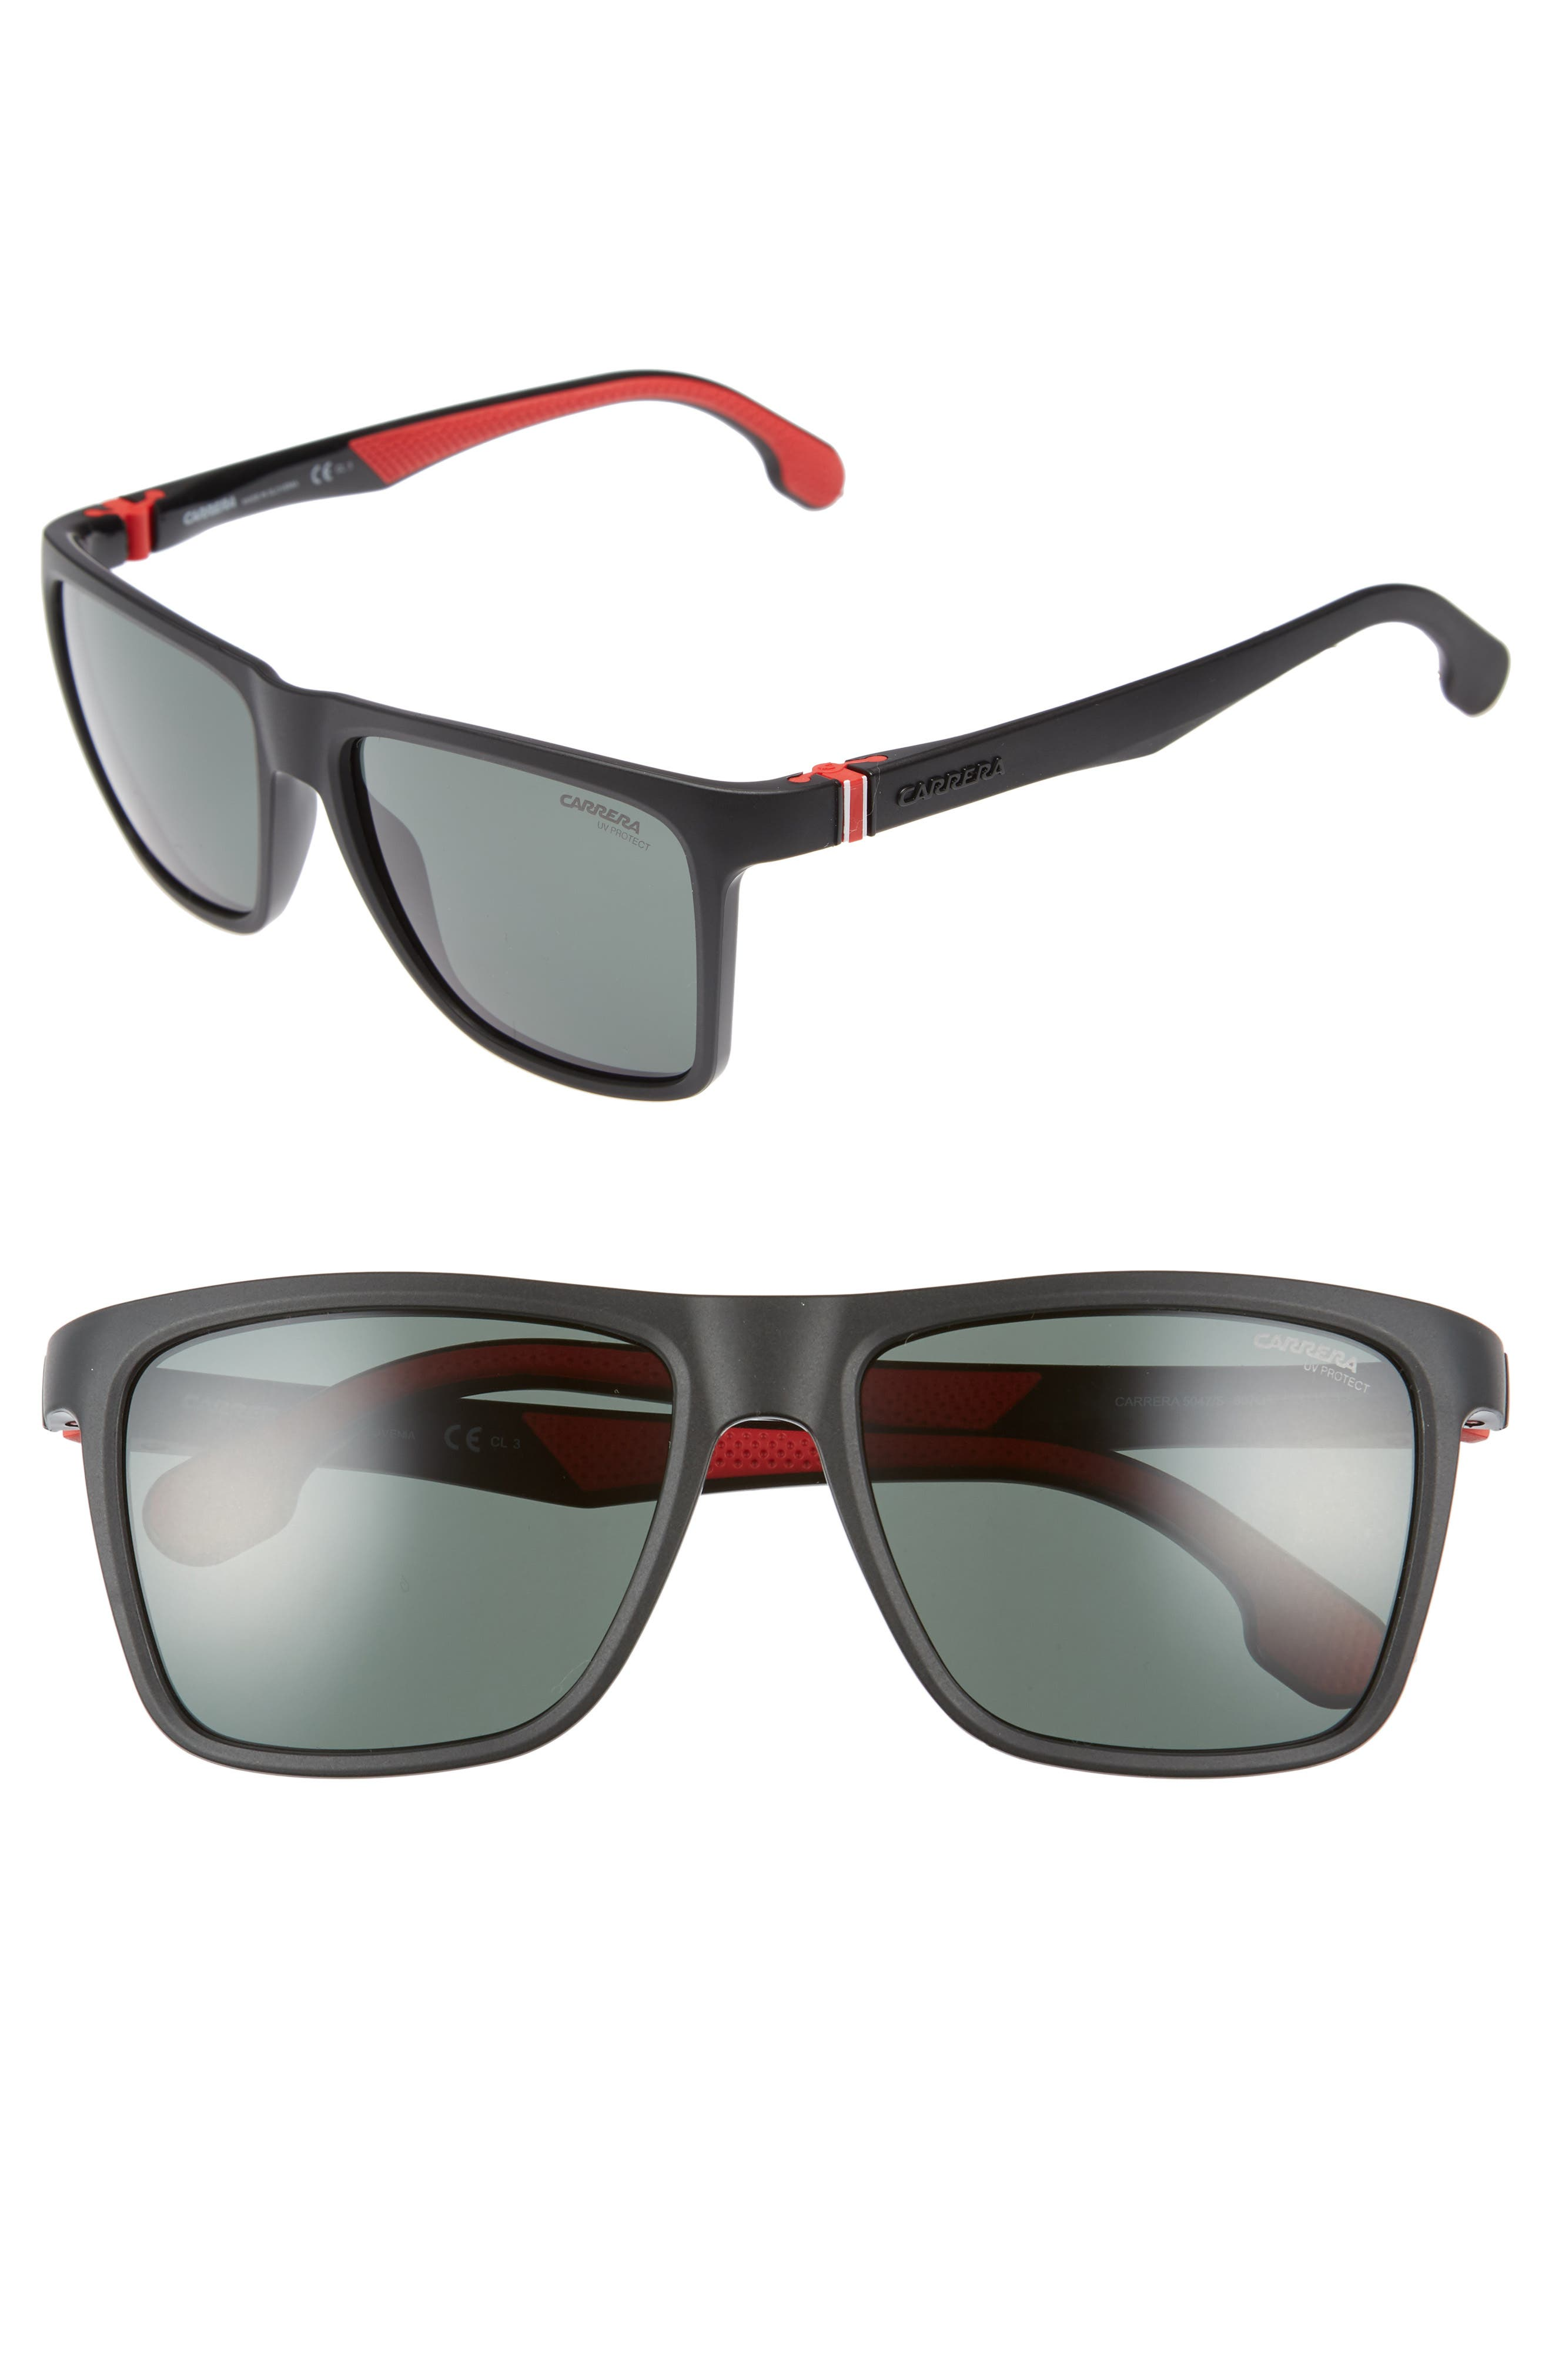 Carrera Eyewear 56mm Sunglasses